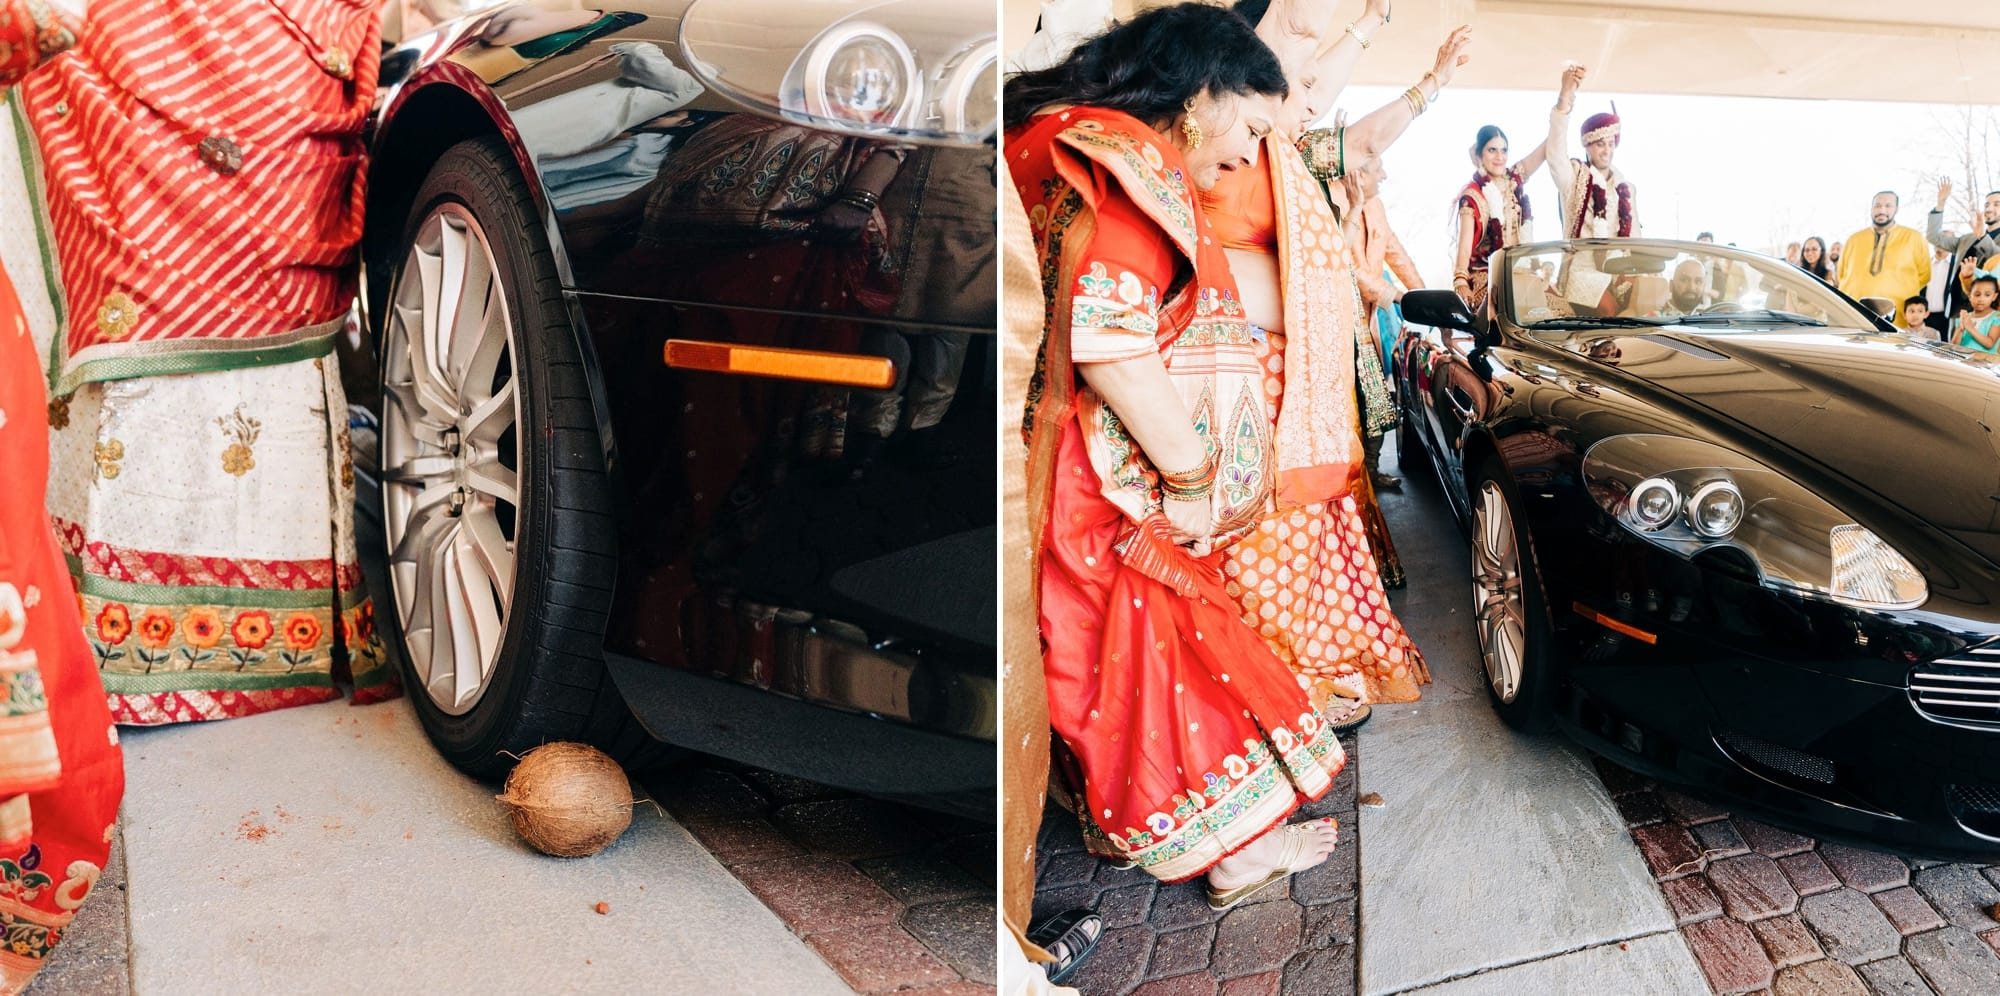 vidaai-indian-wedding-los-angeles.jpg